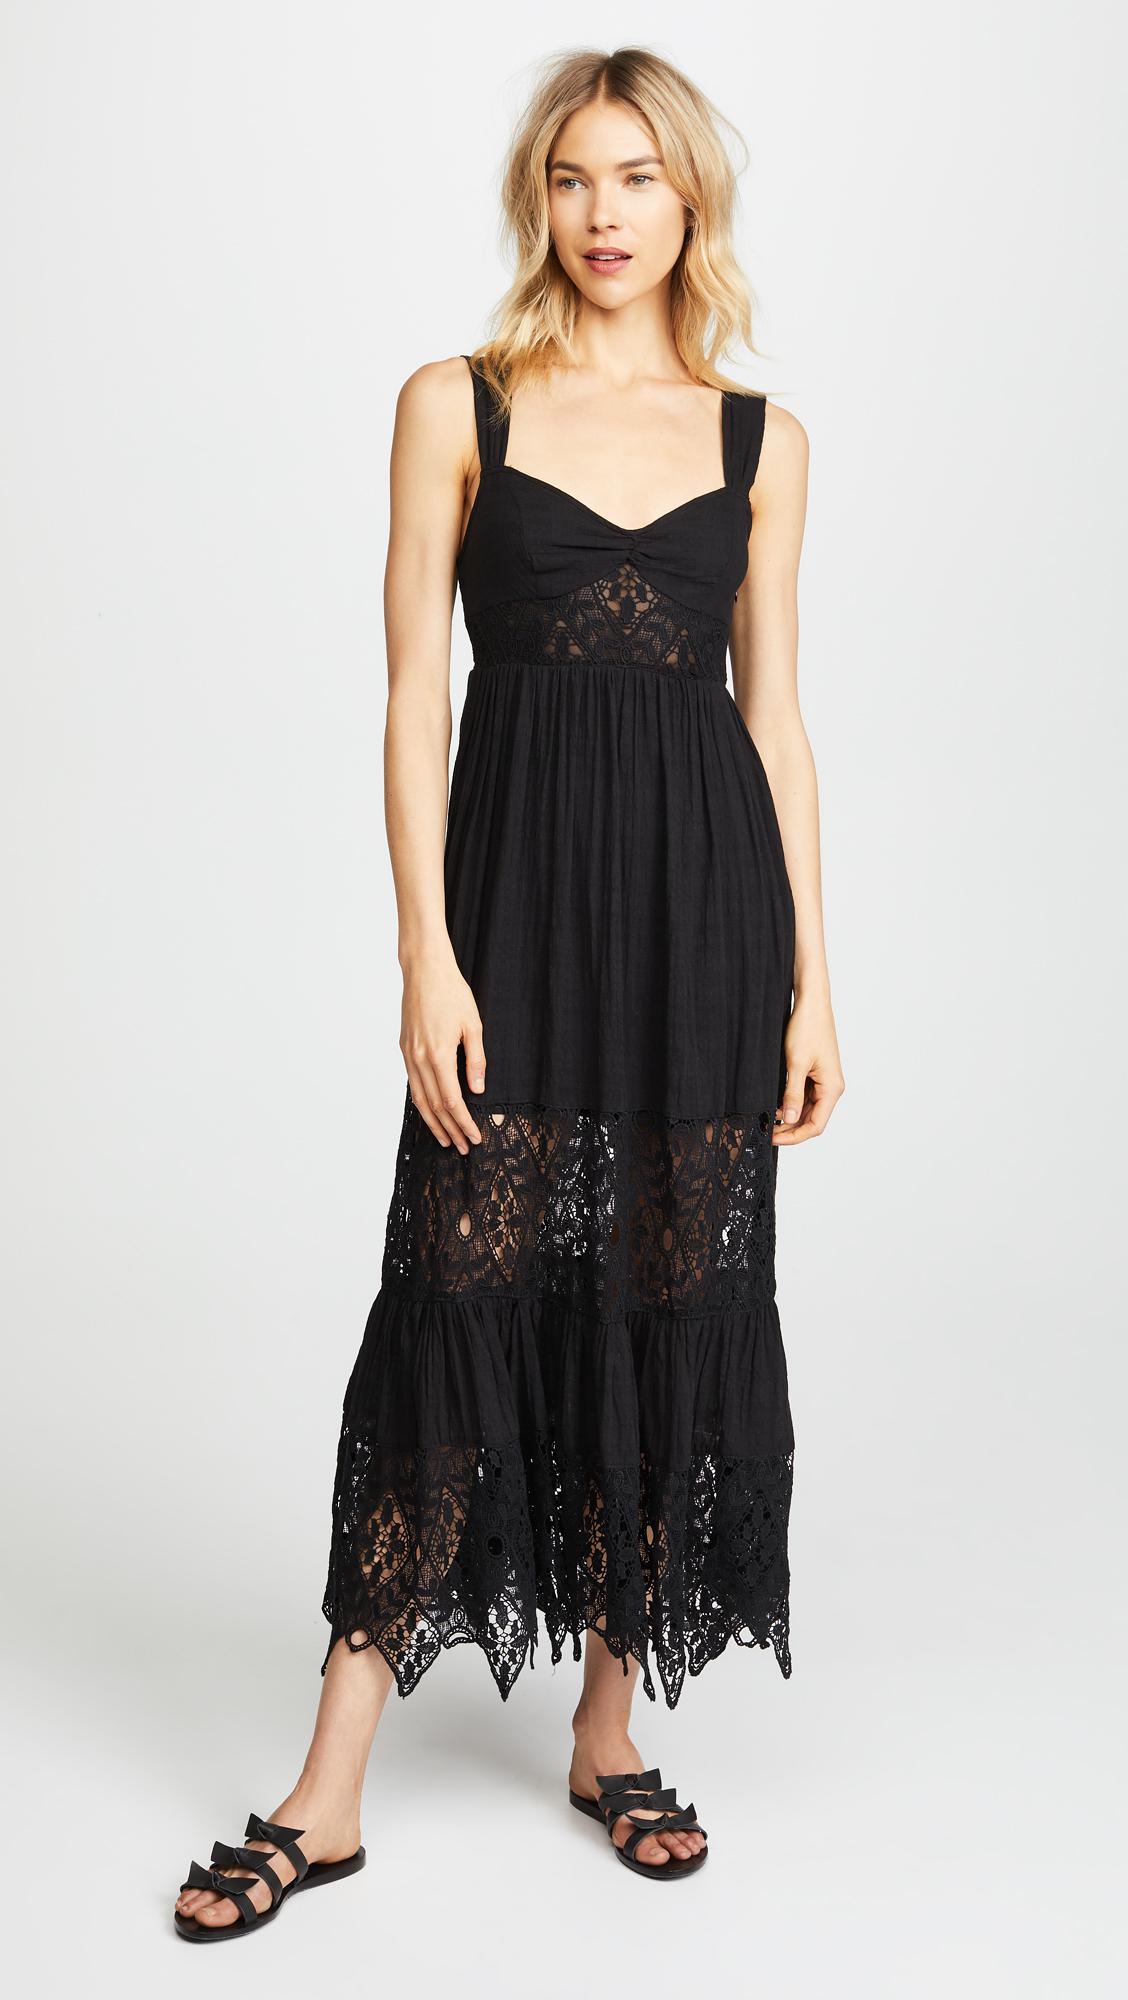 Lyst - Free People Caught Your Eye Maxi Dress in Black